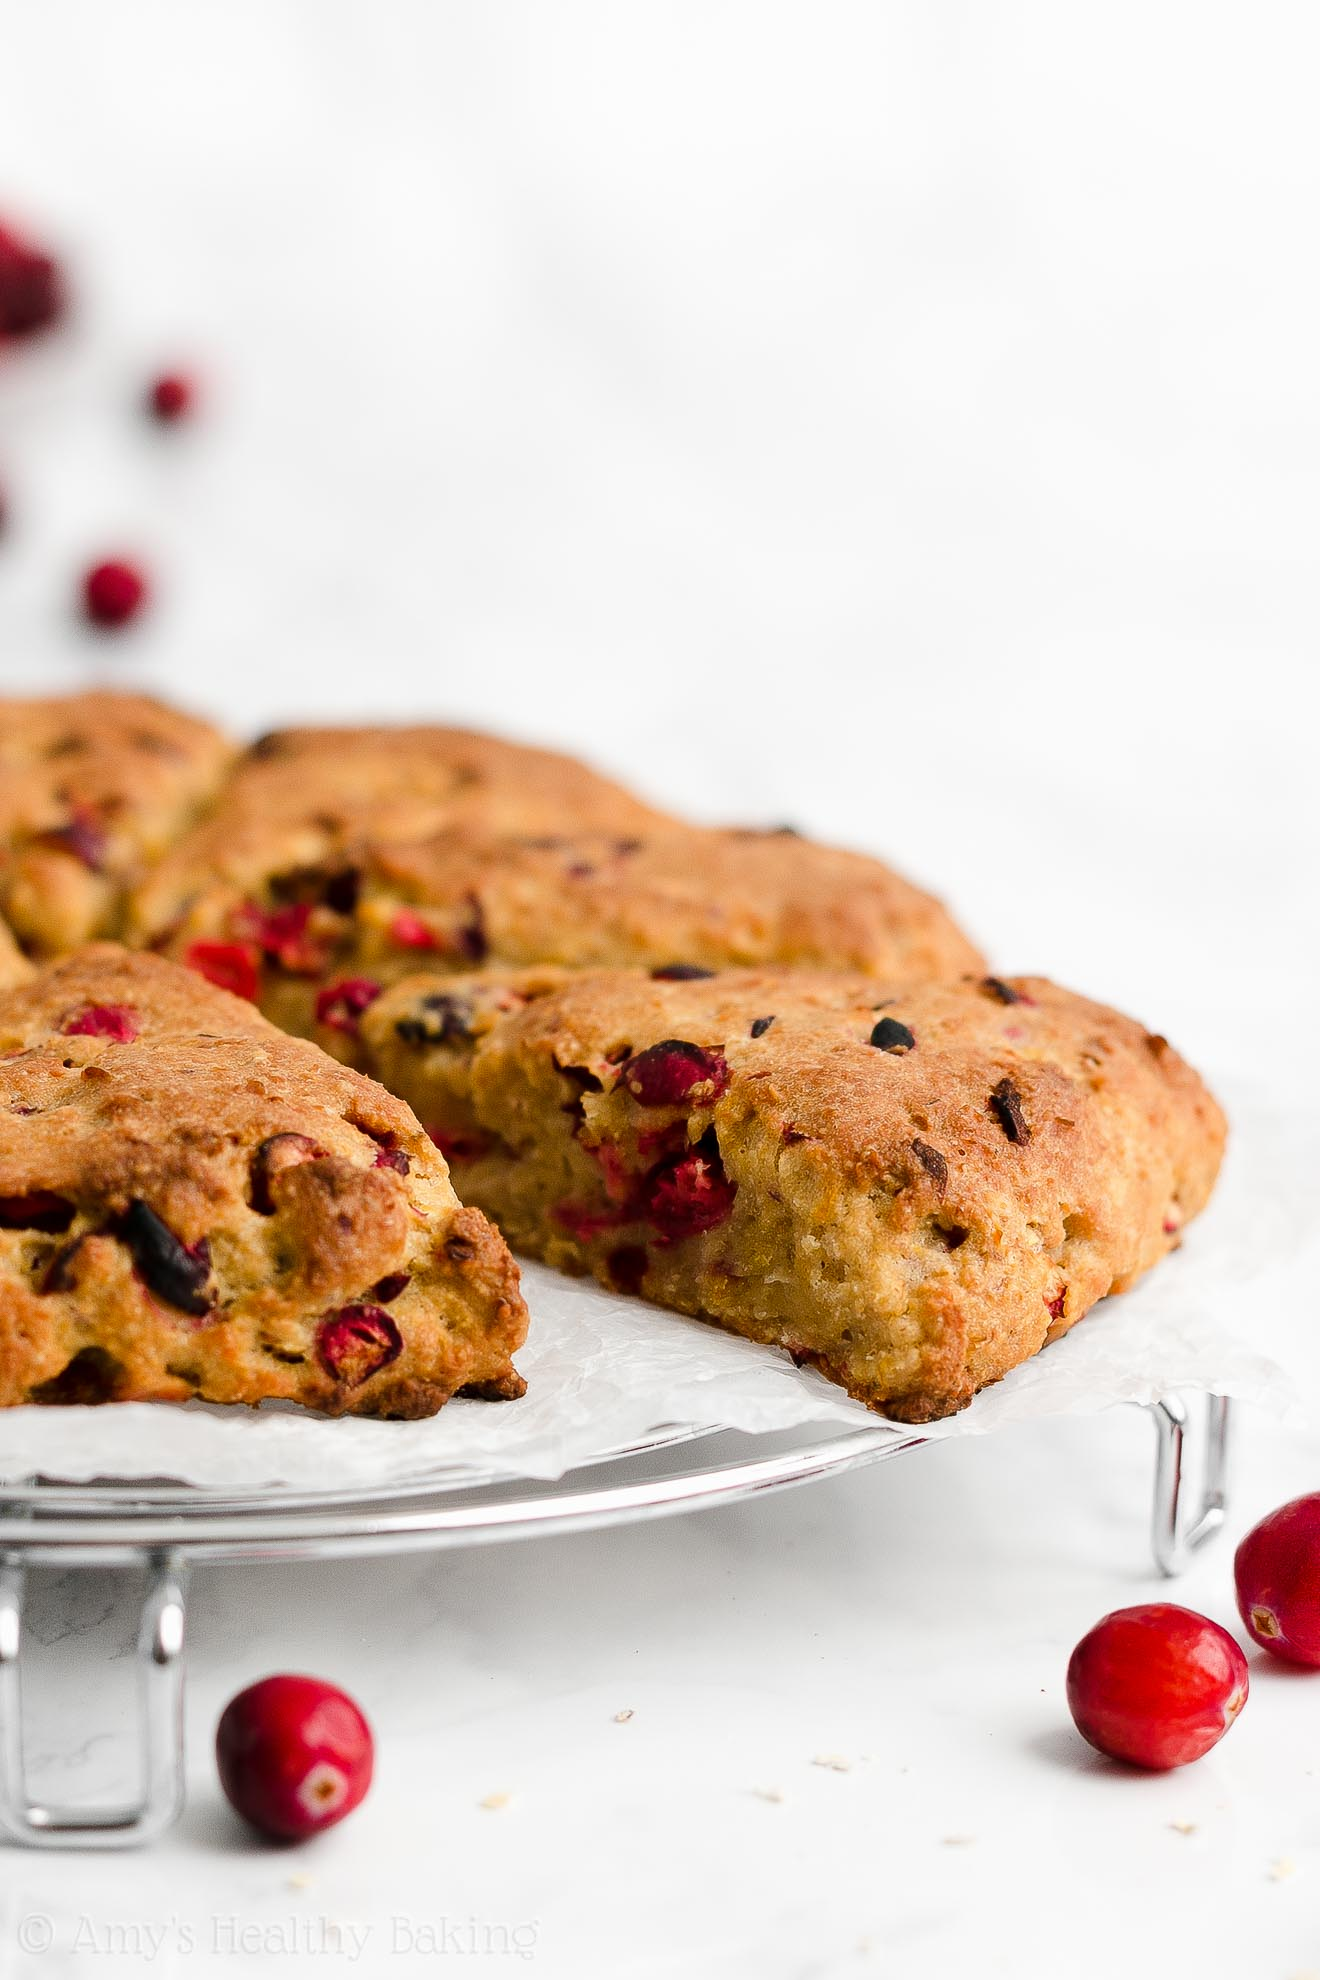 Best Healthy Whole Wheat Low Fat Greek Yogurt Cranberry Orange Oatmeal Scones